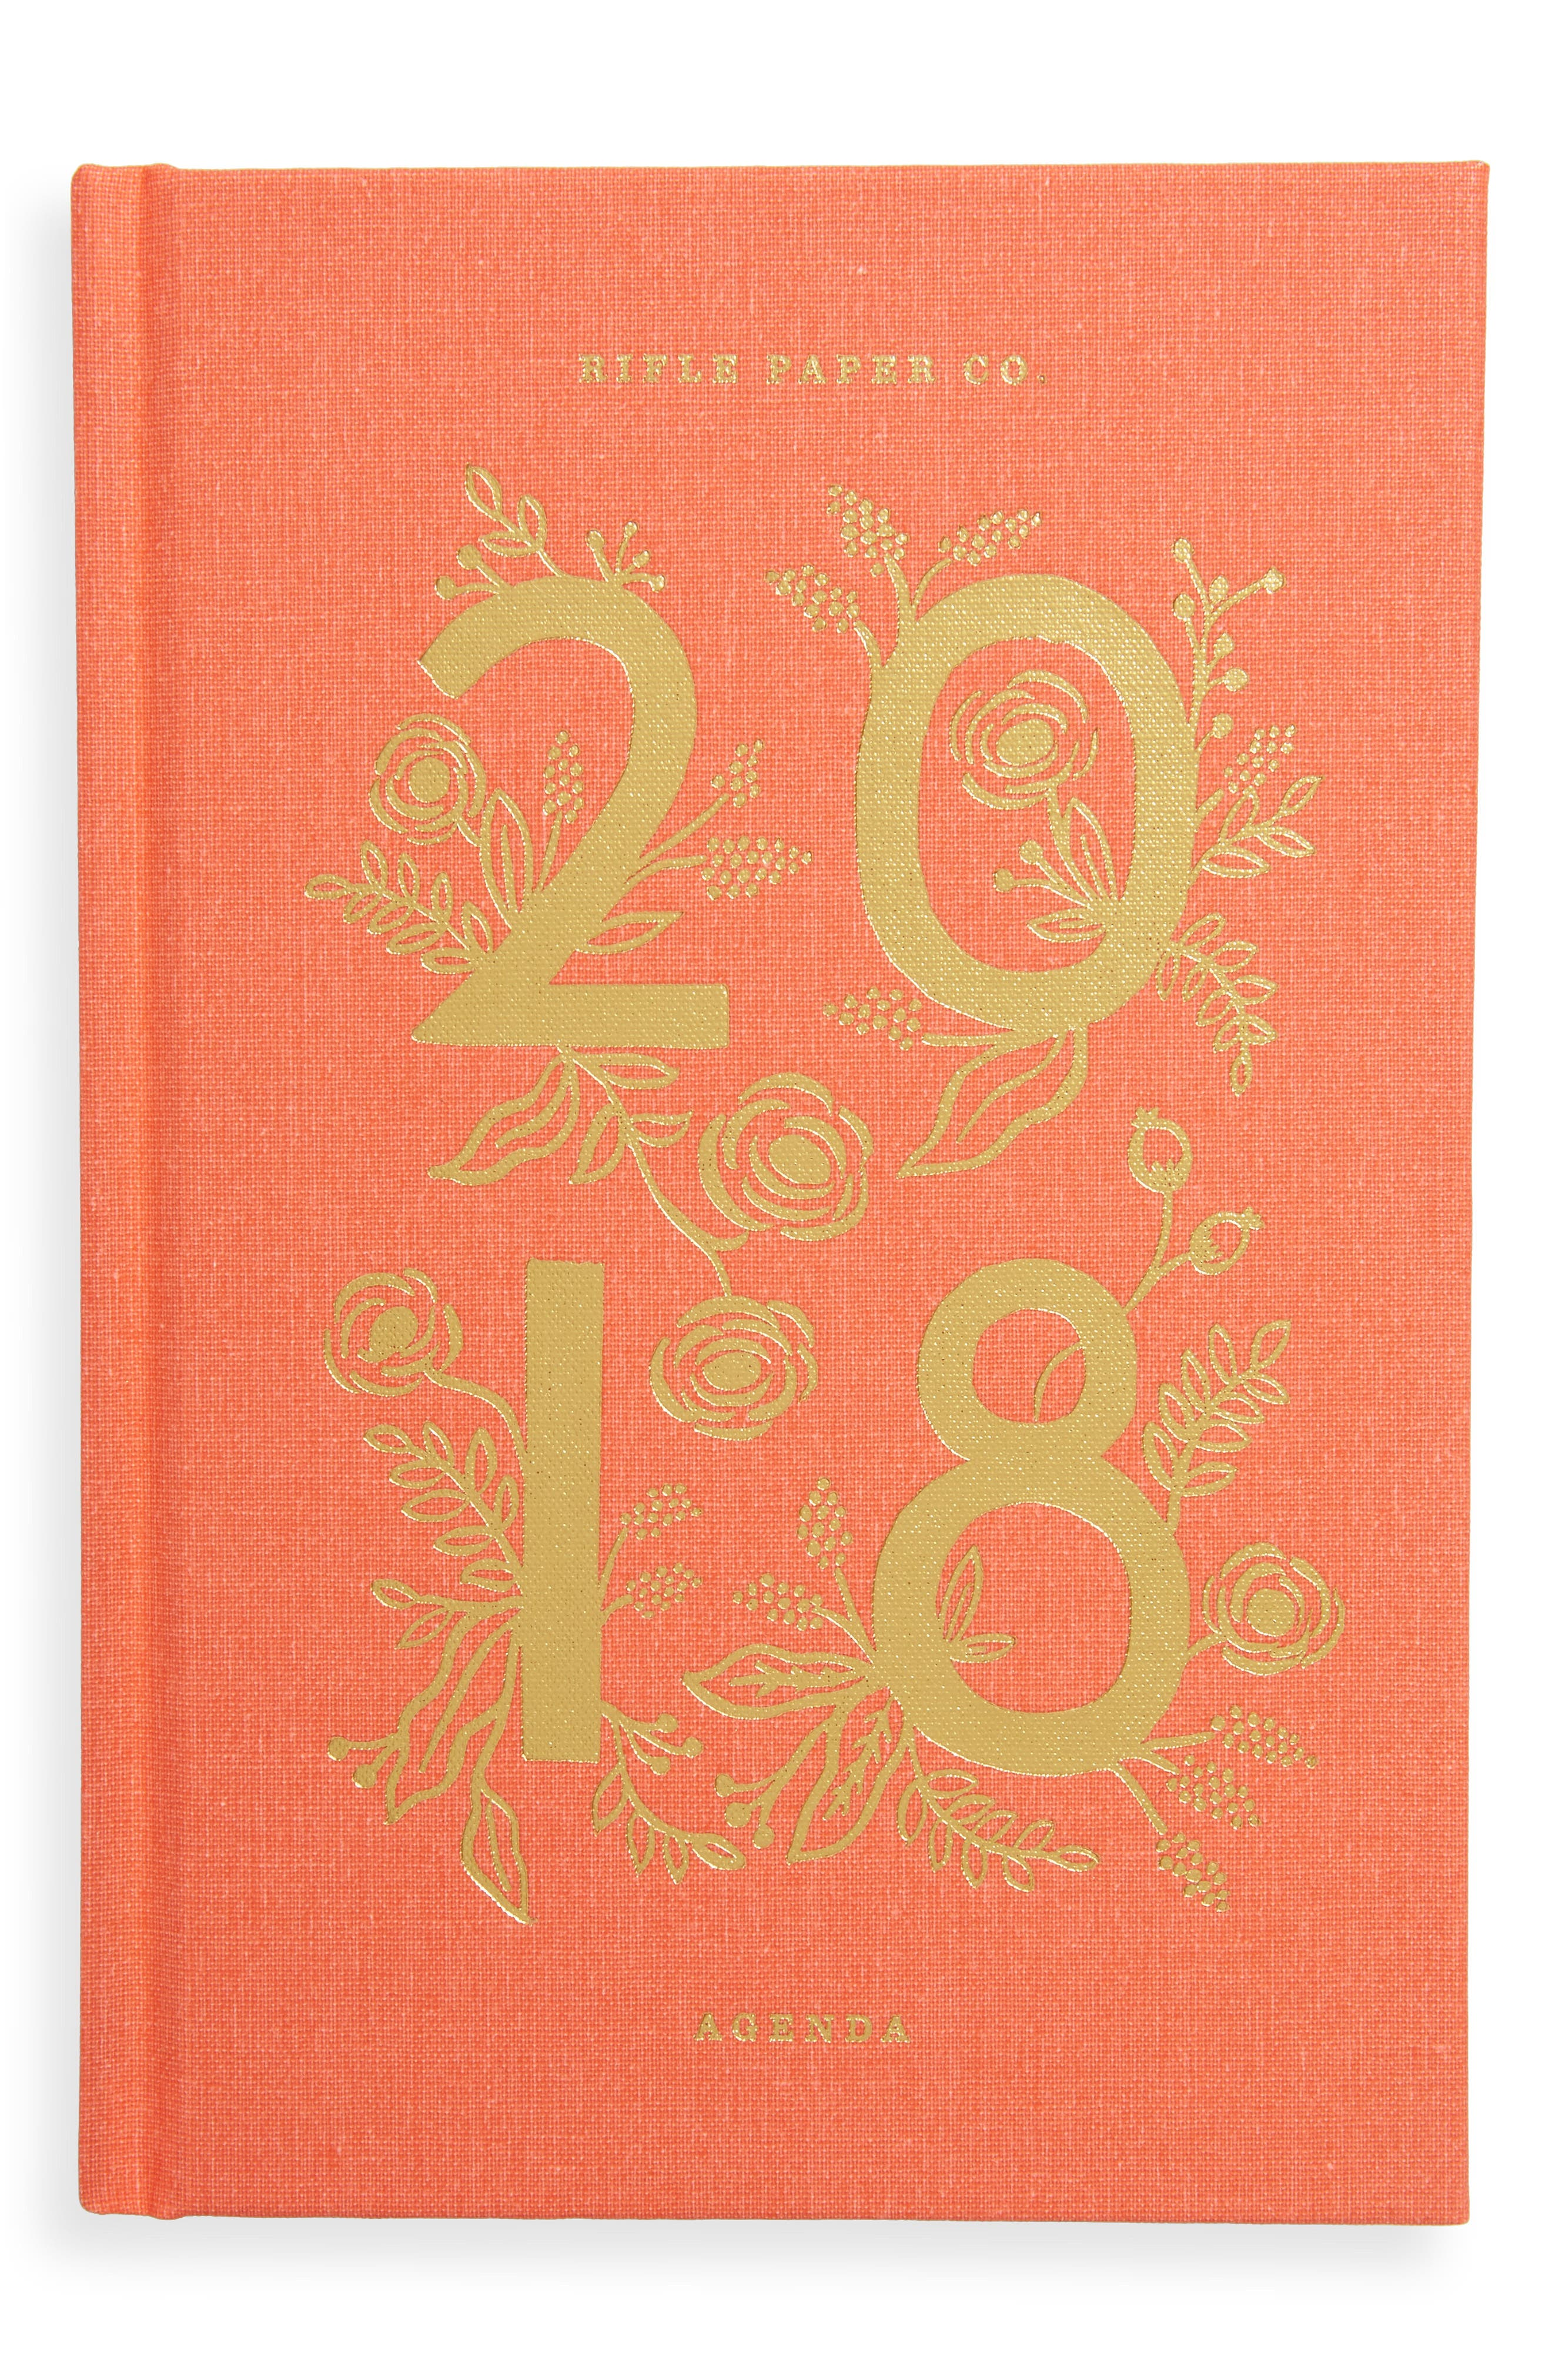 2018 Coral Tabbed Agenda,                         Main,                         color, Red